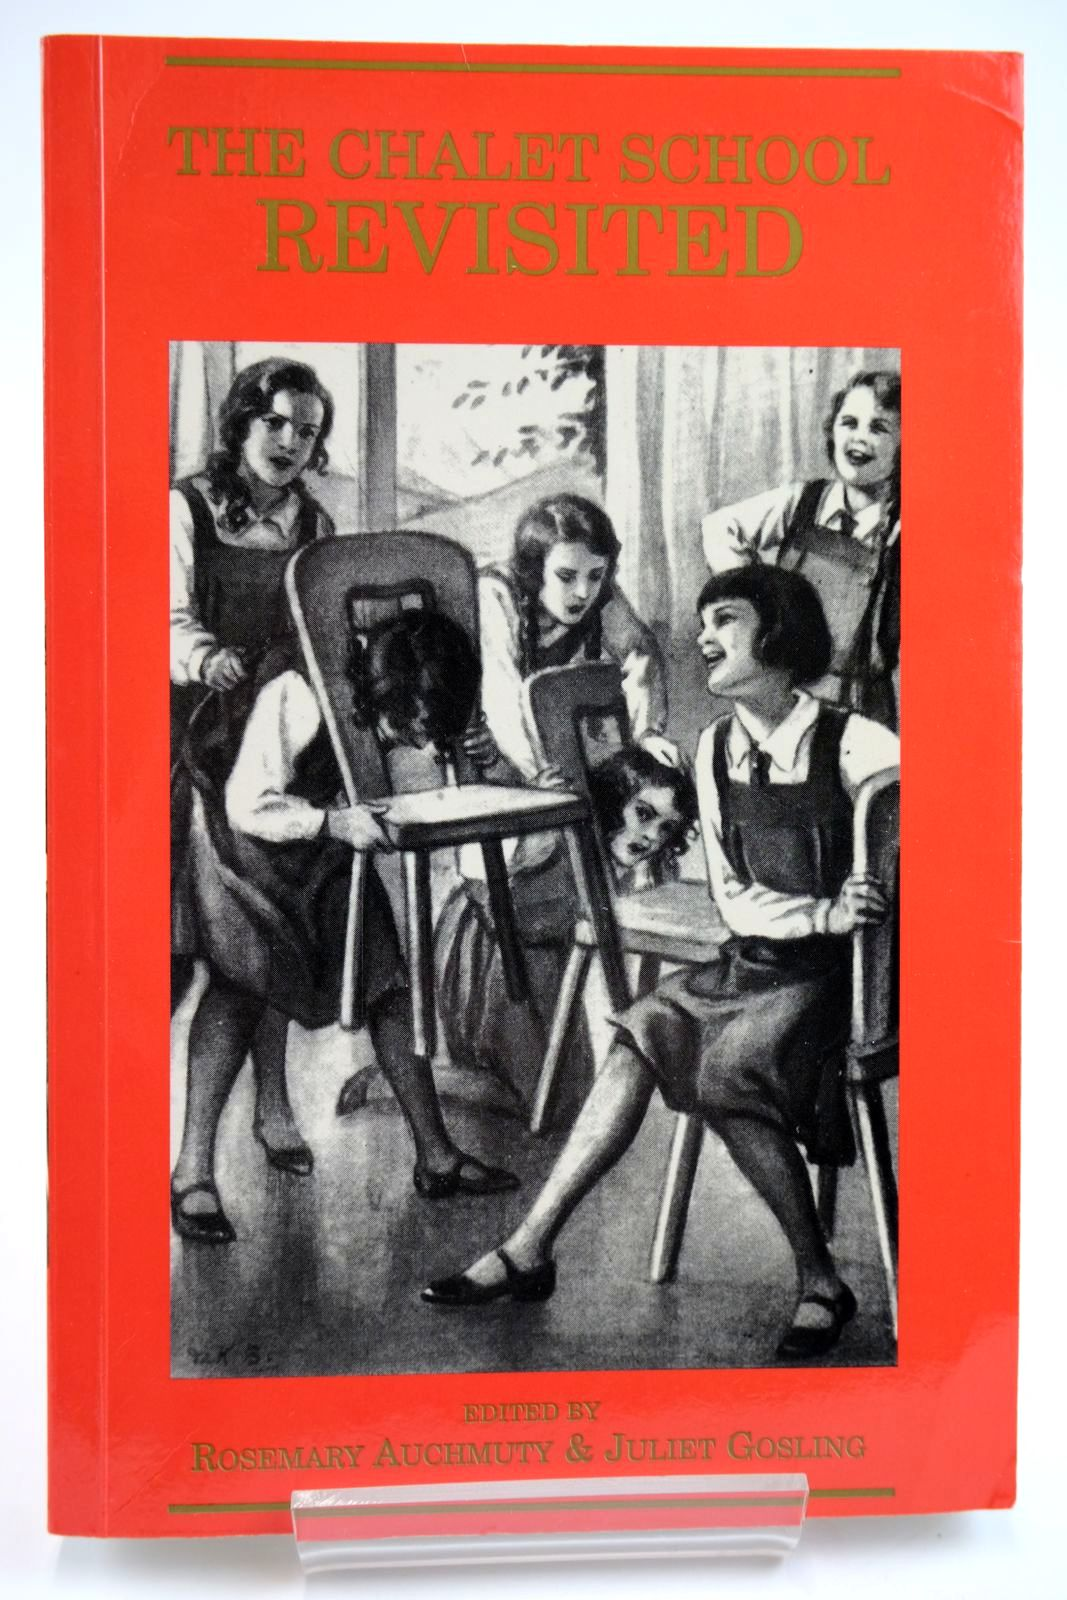 Photo of THE CHALET SCHOOL REVISITED written by Auchmuty, Rosemary Gosling, Juliet published by Bettany Press (STOCK CODE: 2133506)  for sale by Stella & Rose's Books